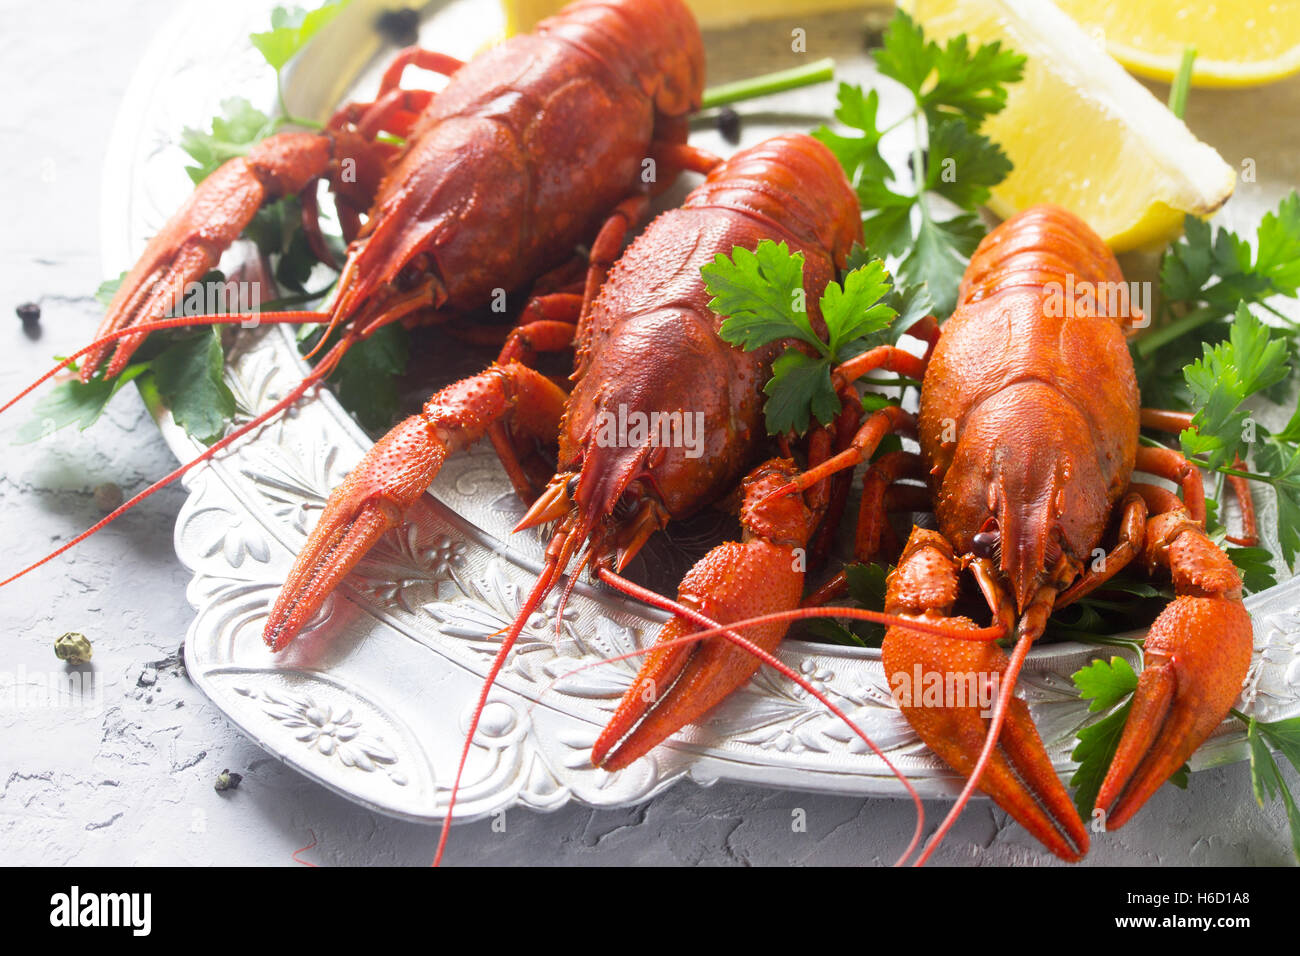 Boiled crayfish, lemon and parsley on a concrete background, selective focus. Food background. The concept of healthy - Stock Image